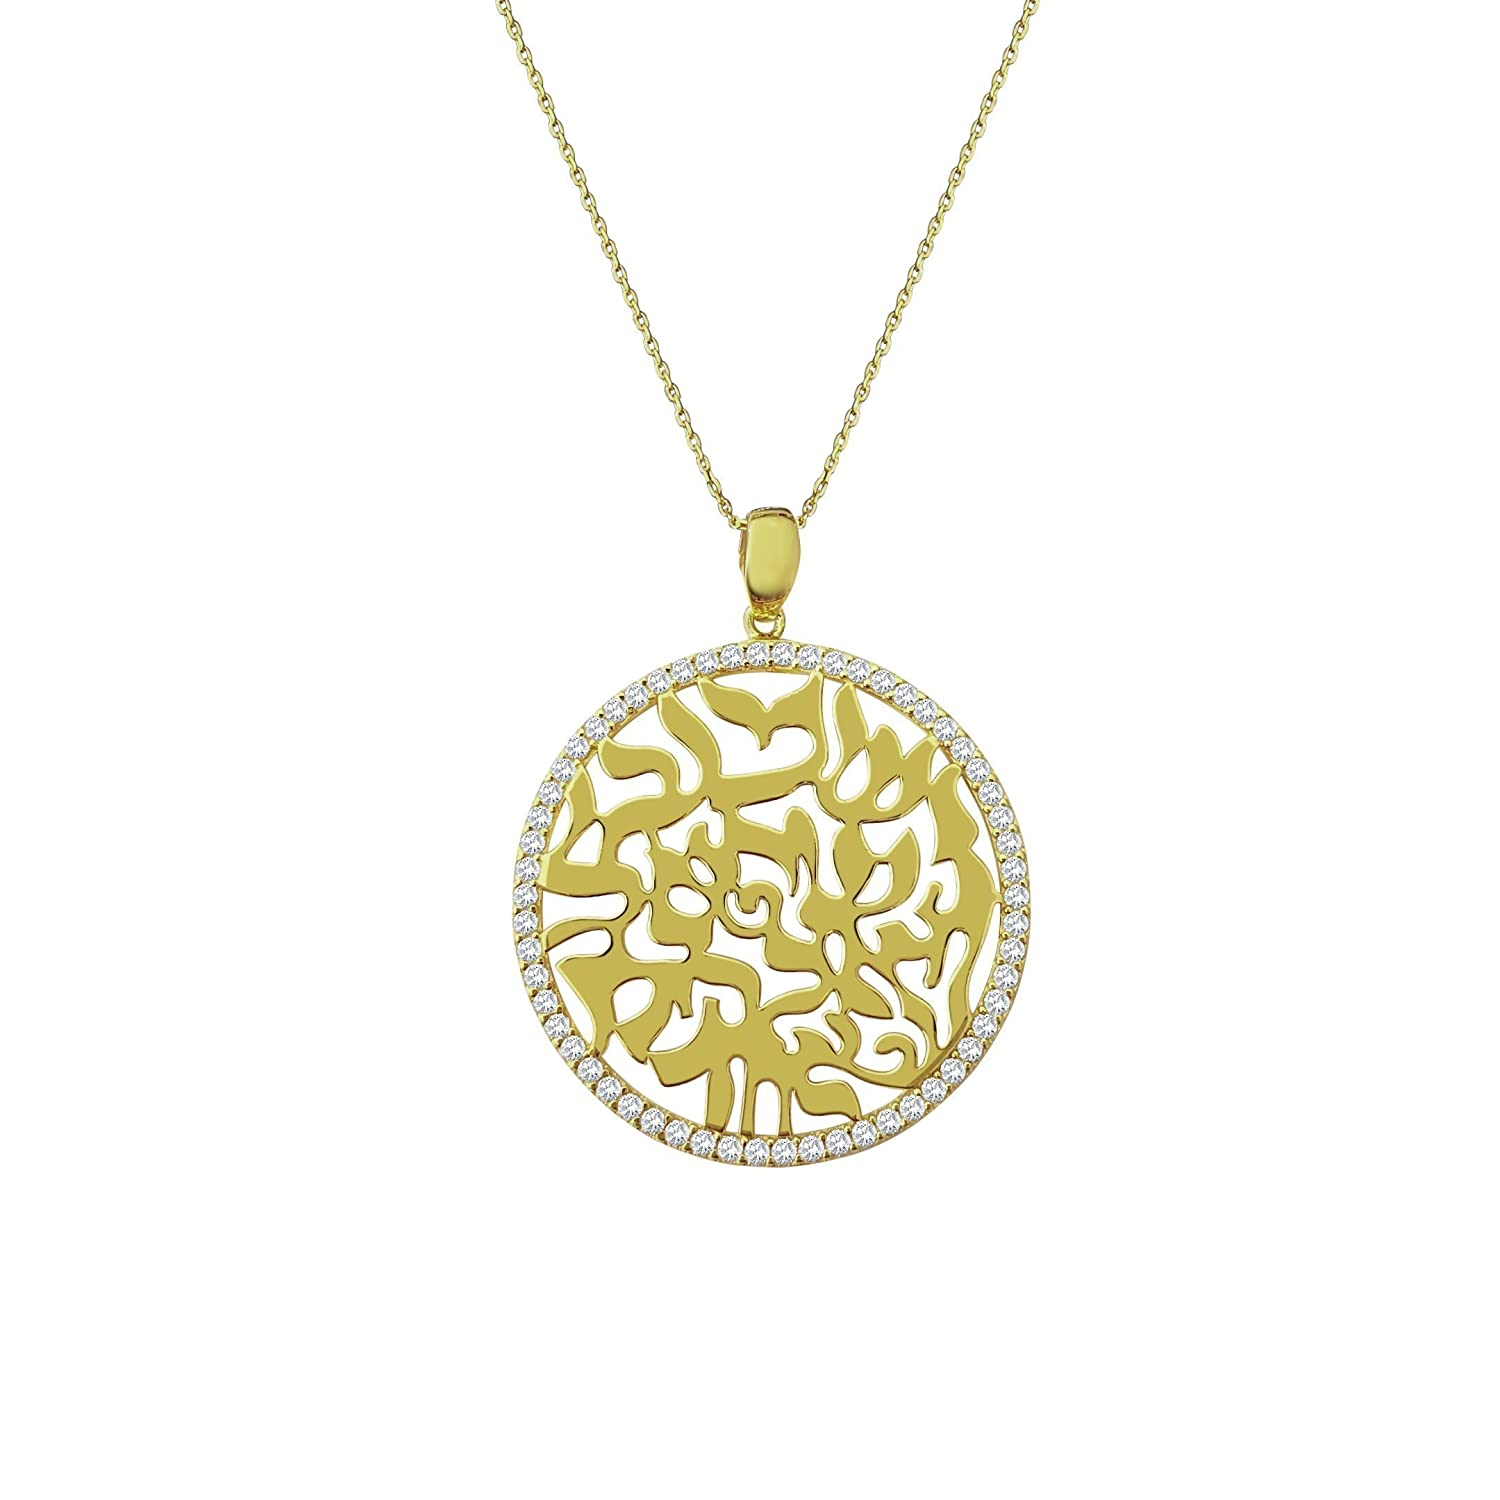 Shema Israel Hebrew Blessing Gold Prayer Necklace for Women and Girls Jewelry | Alef Bet Jewelry